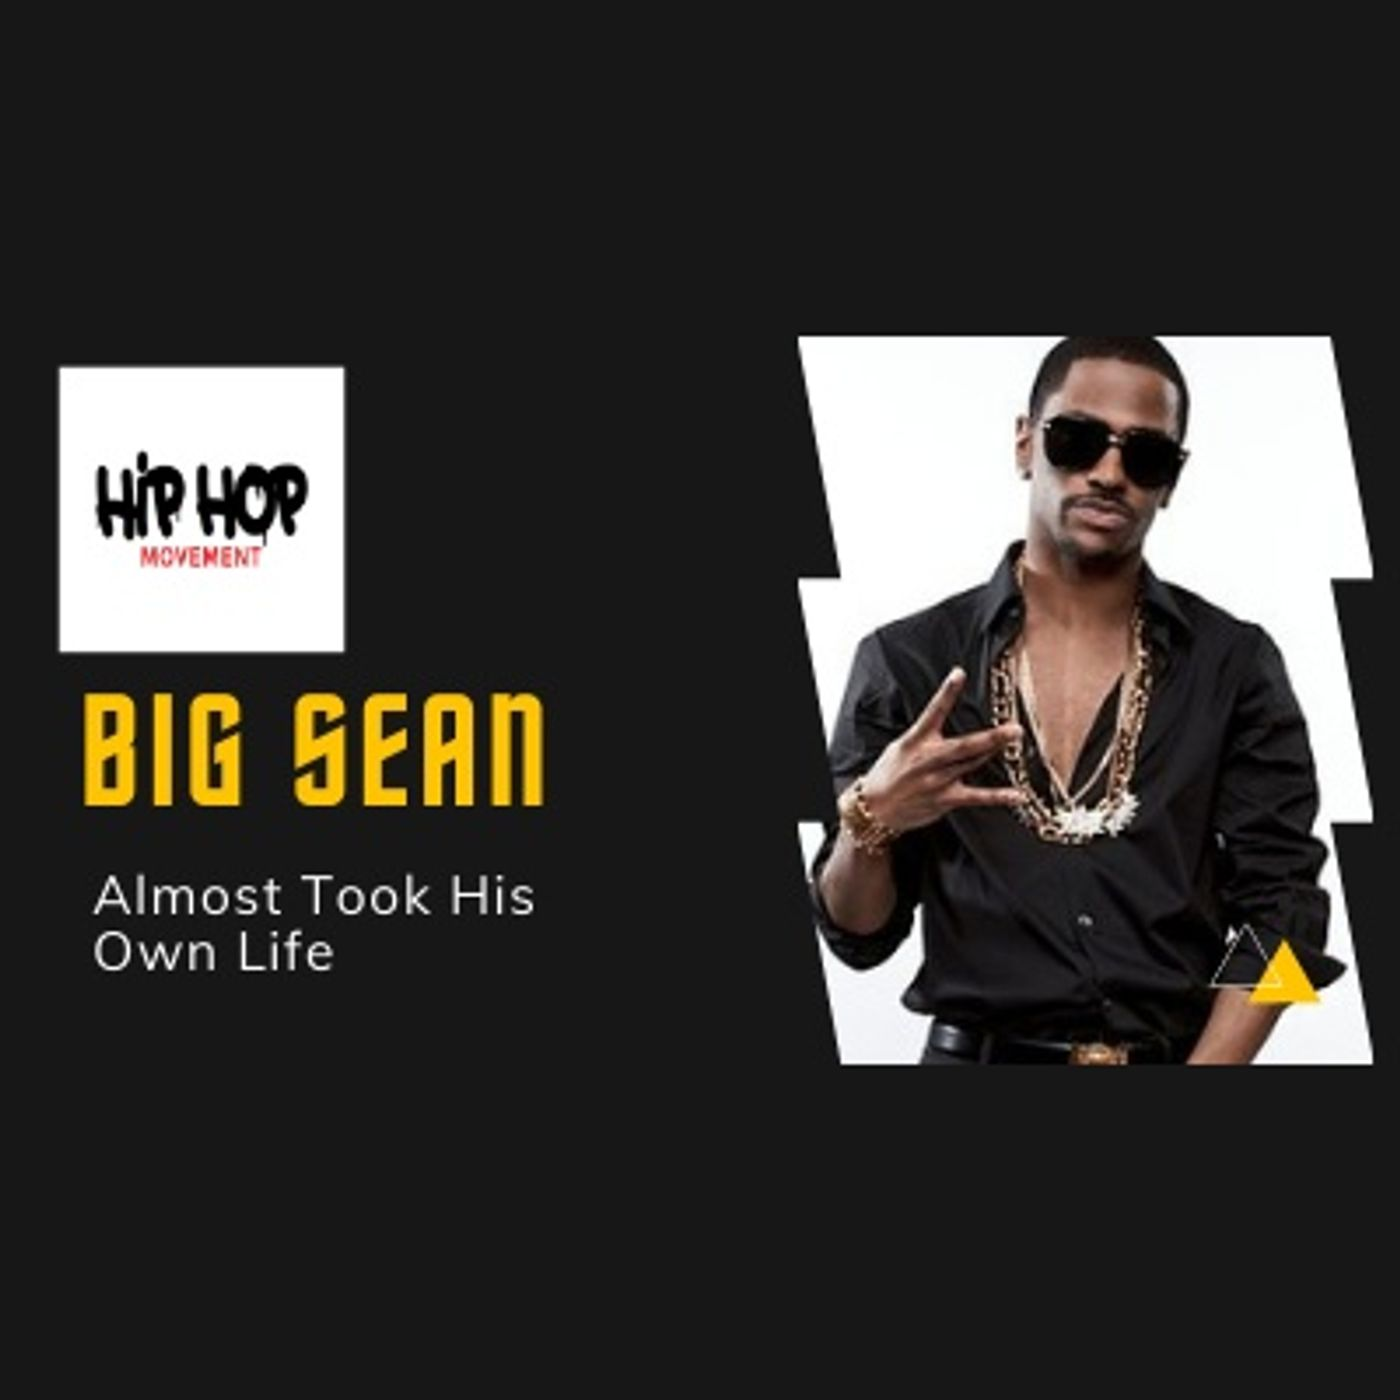 Episode 46 - Big Sean Almost Took His Own Life Contemplating Suicide, Hip Hop News